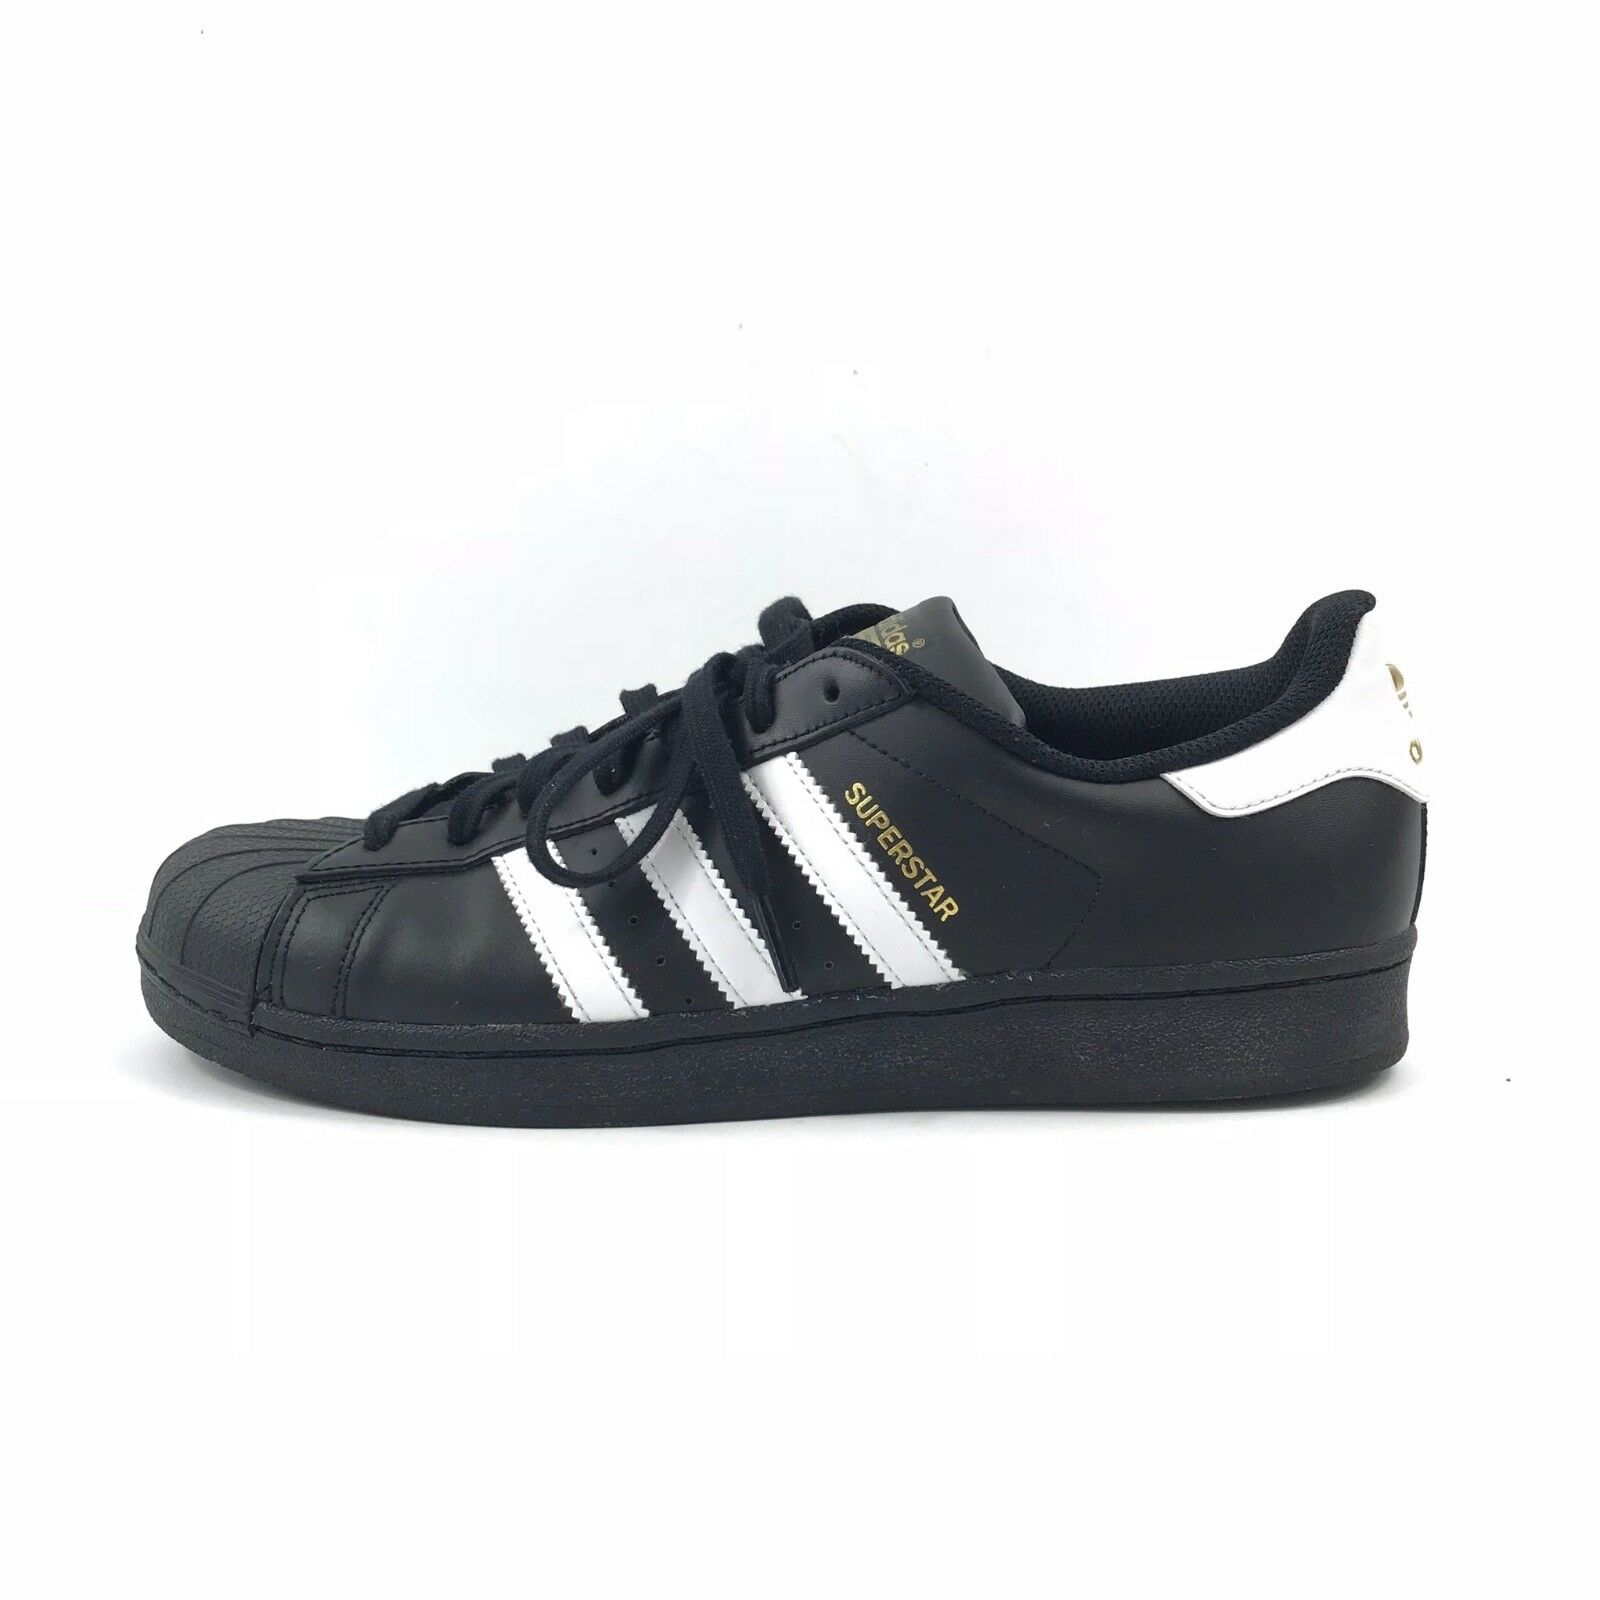 Adidas Originals Mens Superstar Casual Sneaker Shoes BLK/White/Gold Sz 10 B27140